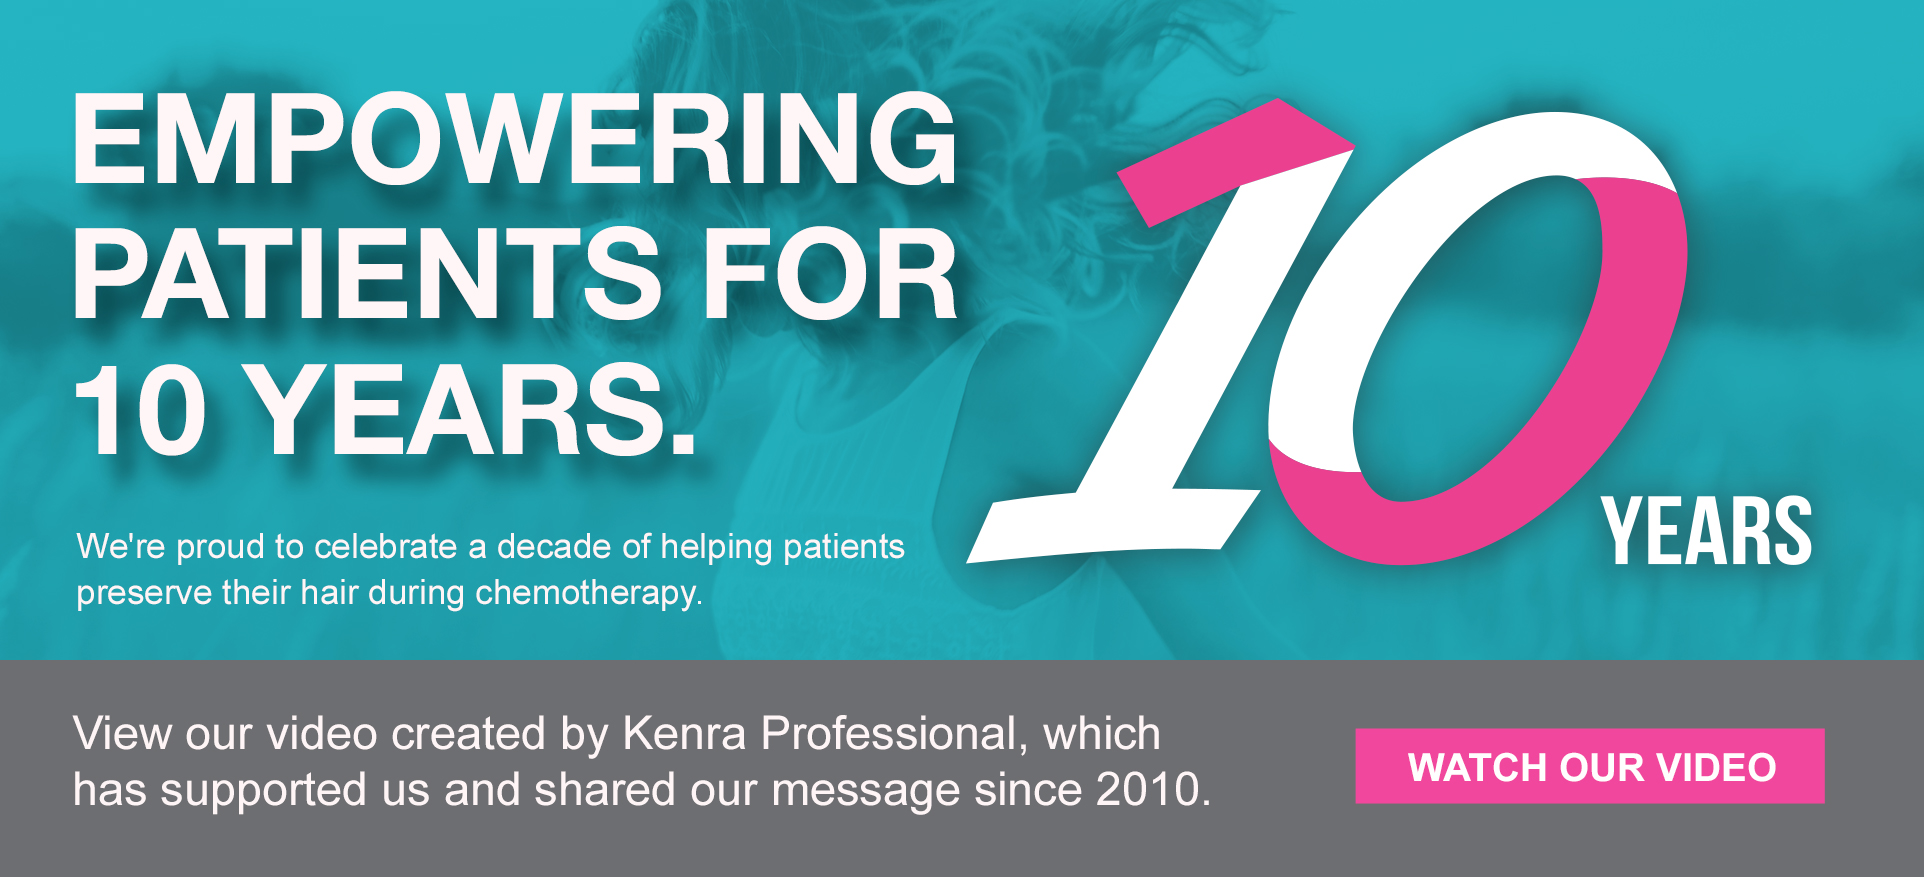 Empowering Patients for 10 Years.